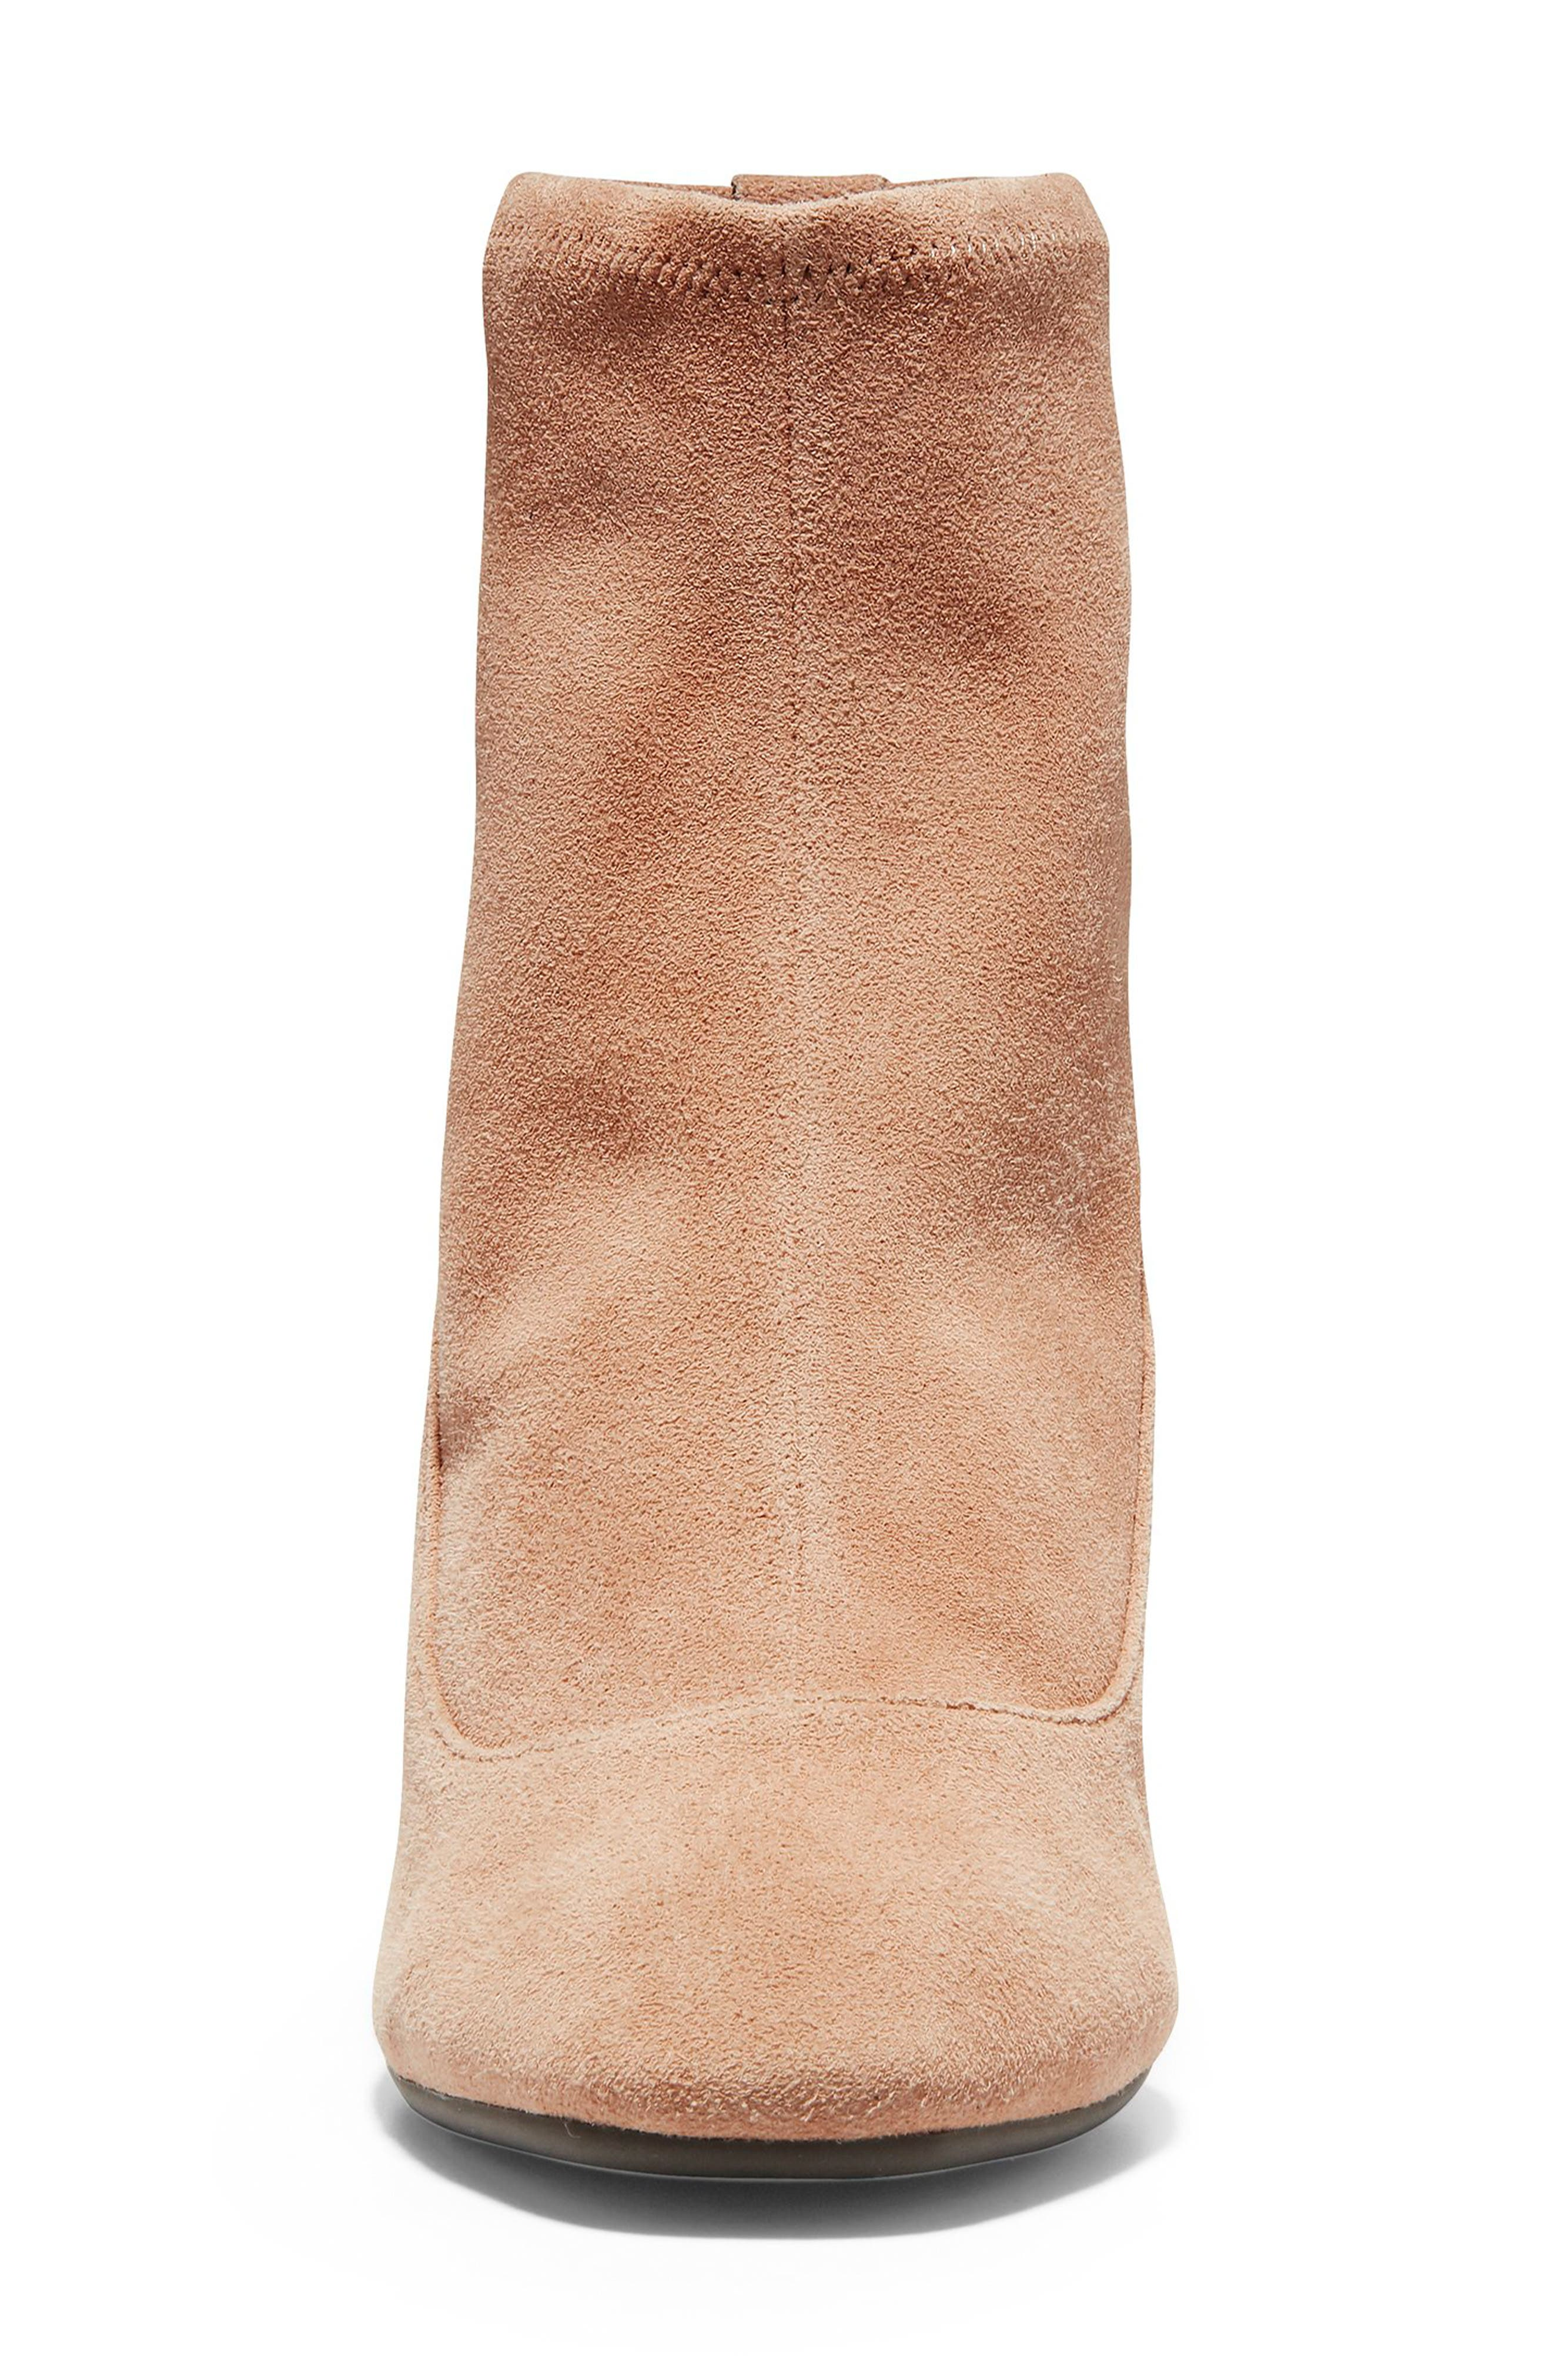 Laree Stretch Bootie,                             Alternate thumbnail 4, color,                             MOCHA STRETCH SUEDE